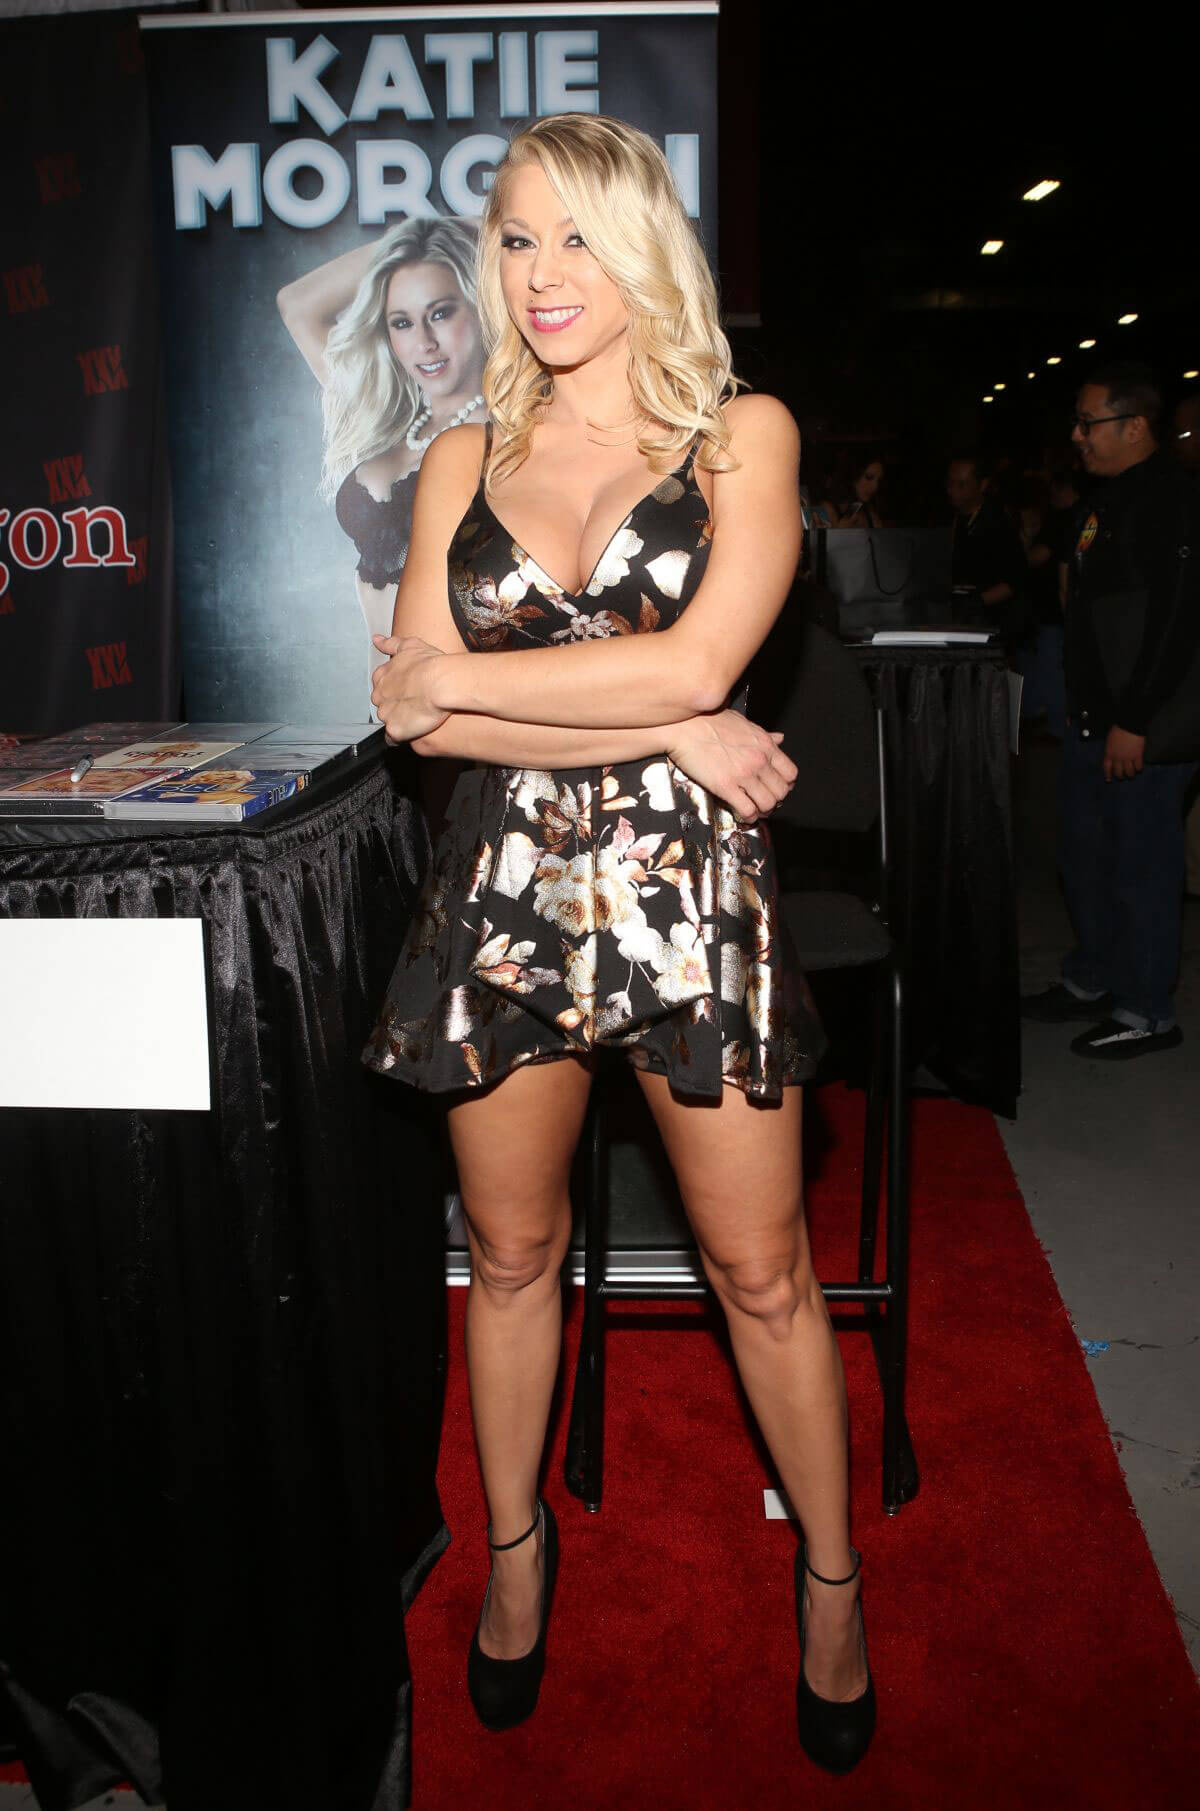 Katie Morgan wears Short Dress at Exxxotica Expo 2017 in New Jersey